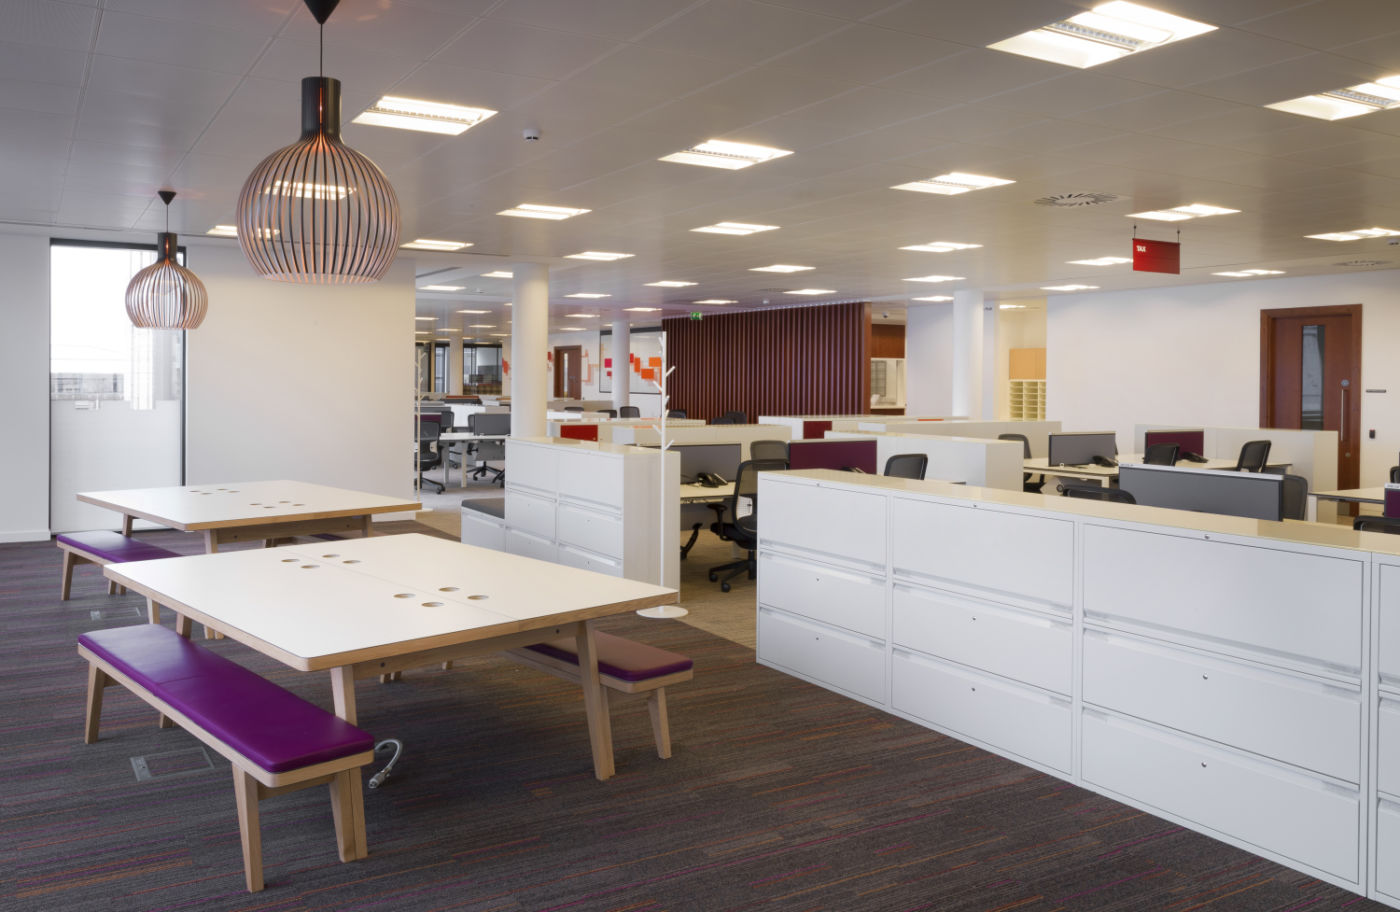 Office fit out with coloured stools and storage solutions